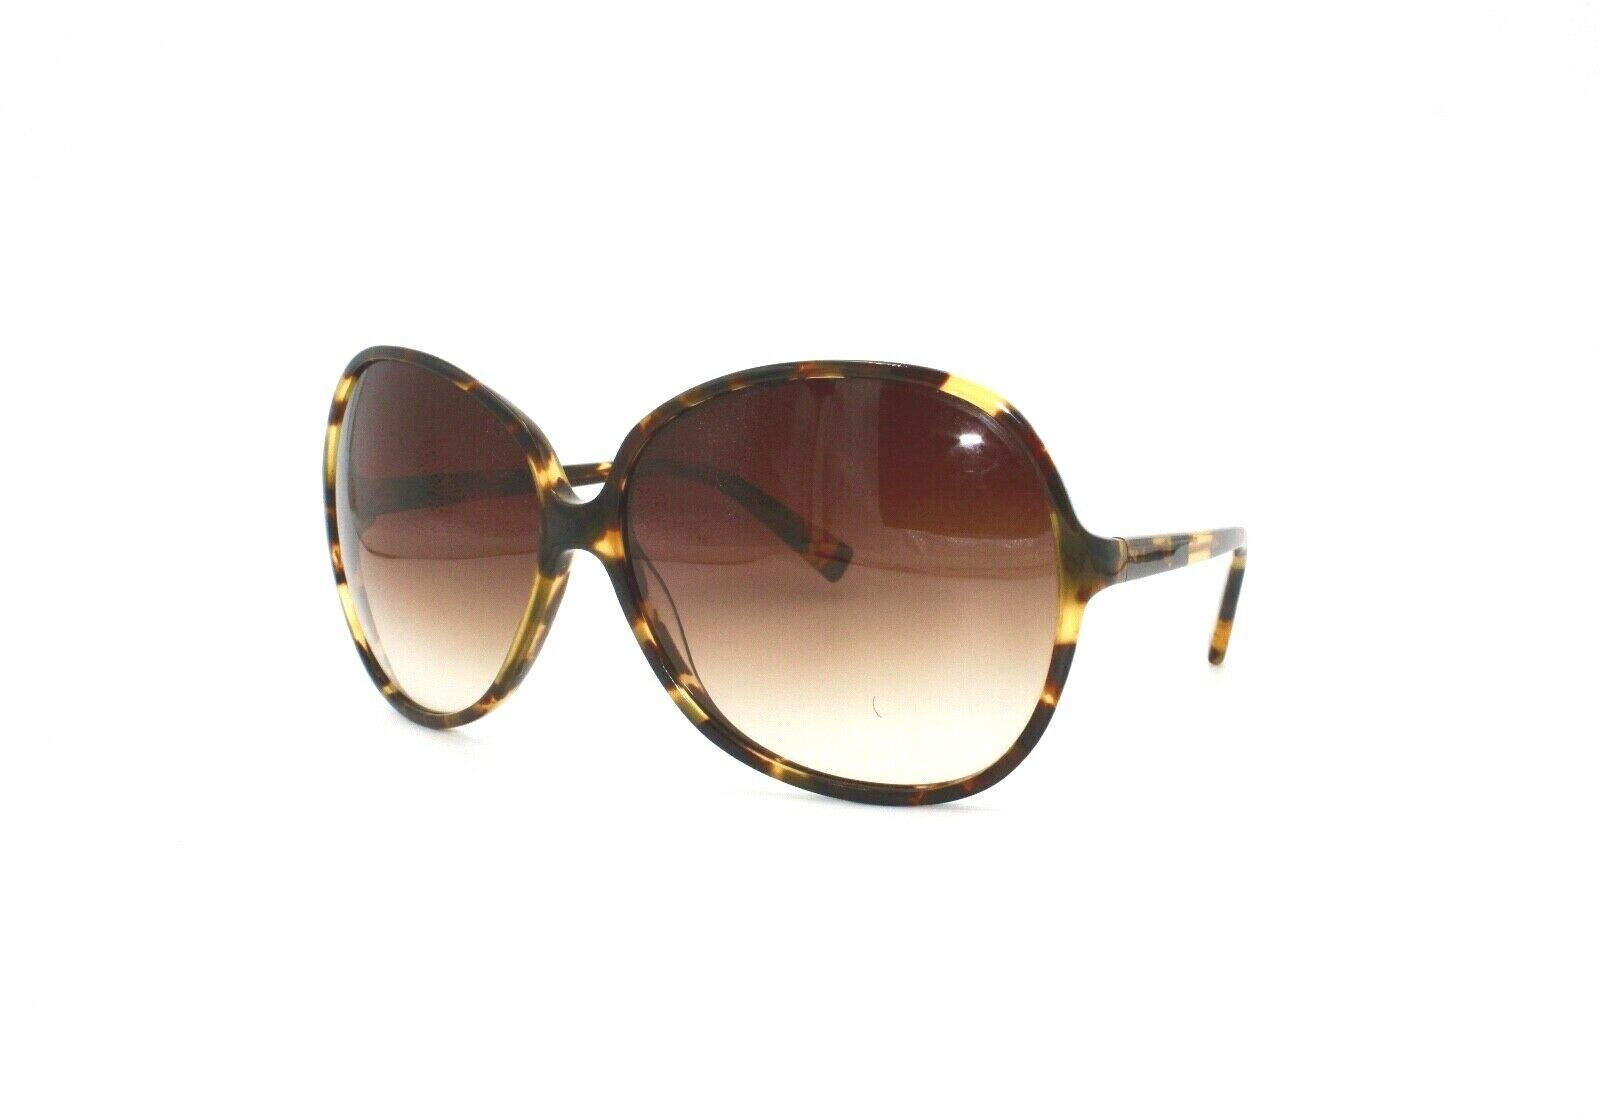 Oliver Peoples Sunglasses 69 15 125 Chelsea DTB Made in Japan - Mydesigneroptic